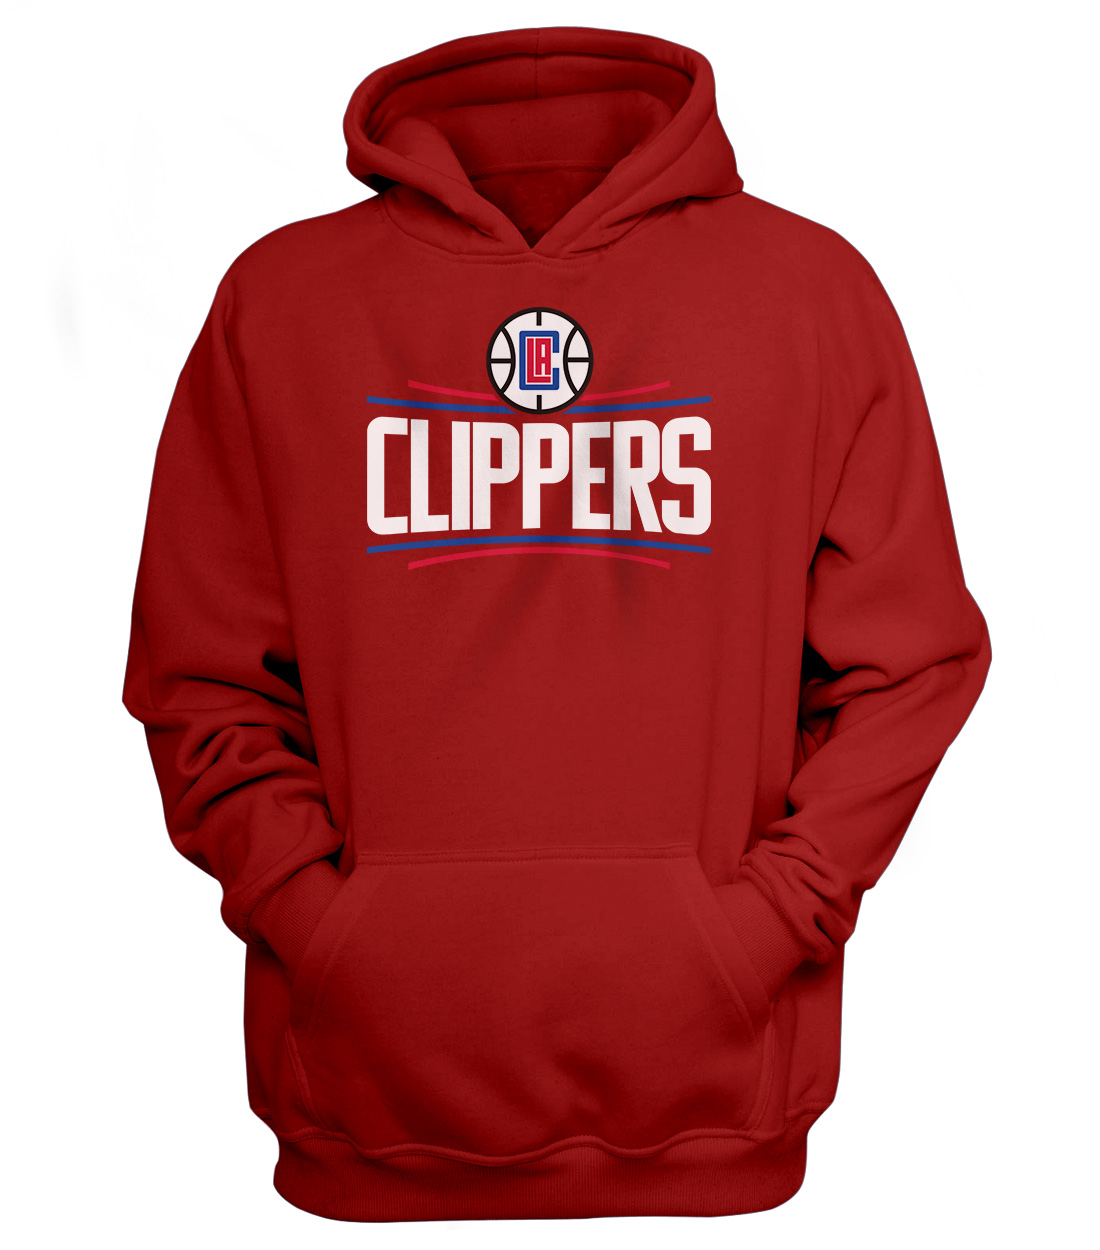 L.A. Clippers Hoodie (HD-RED-NP-119-NBA-LAC-LOGO)